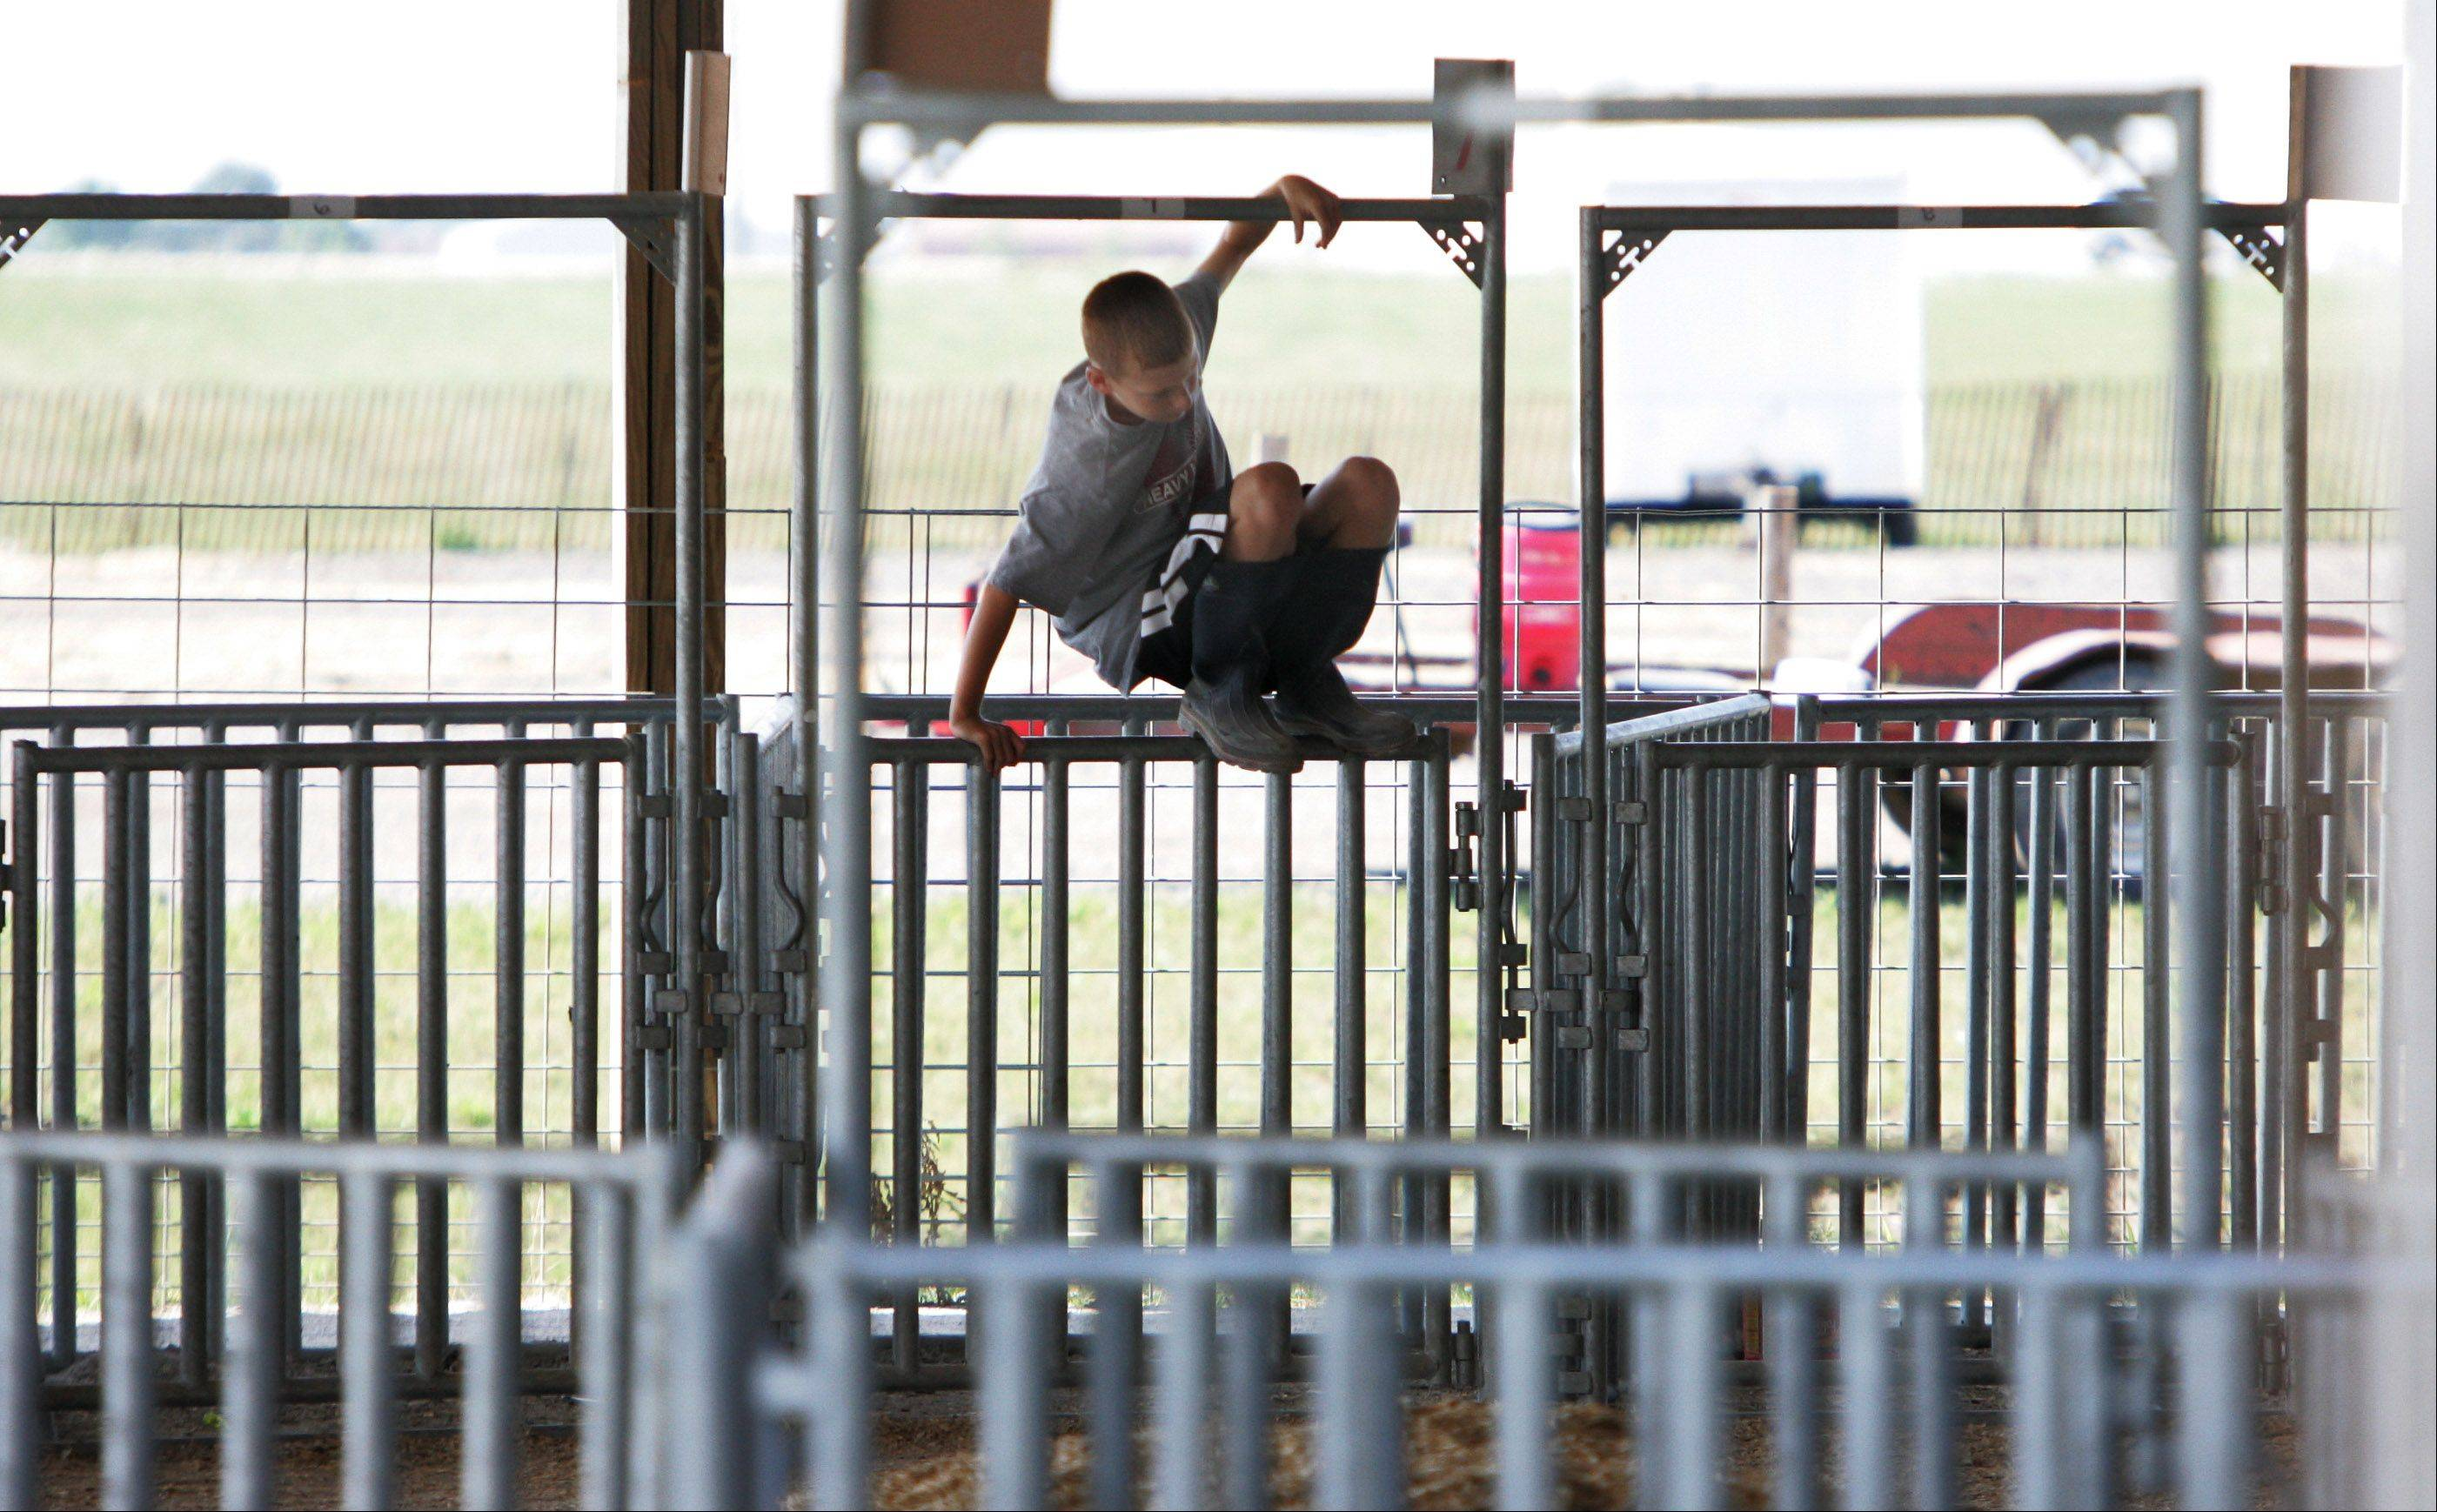 Eleven-year-old Matthew Gaines, of Libertyville, hangs around the livestock stalls during last day of the 84th Annual Lake County Fair Sunday in Grayslake.